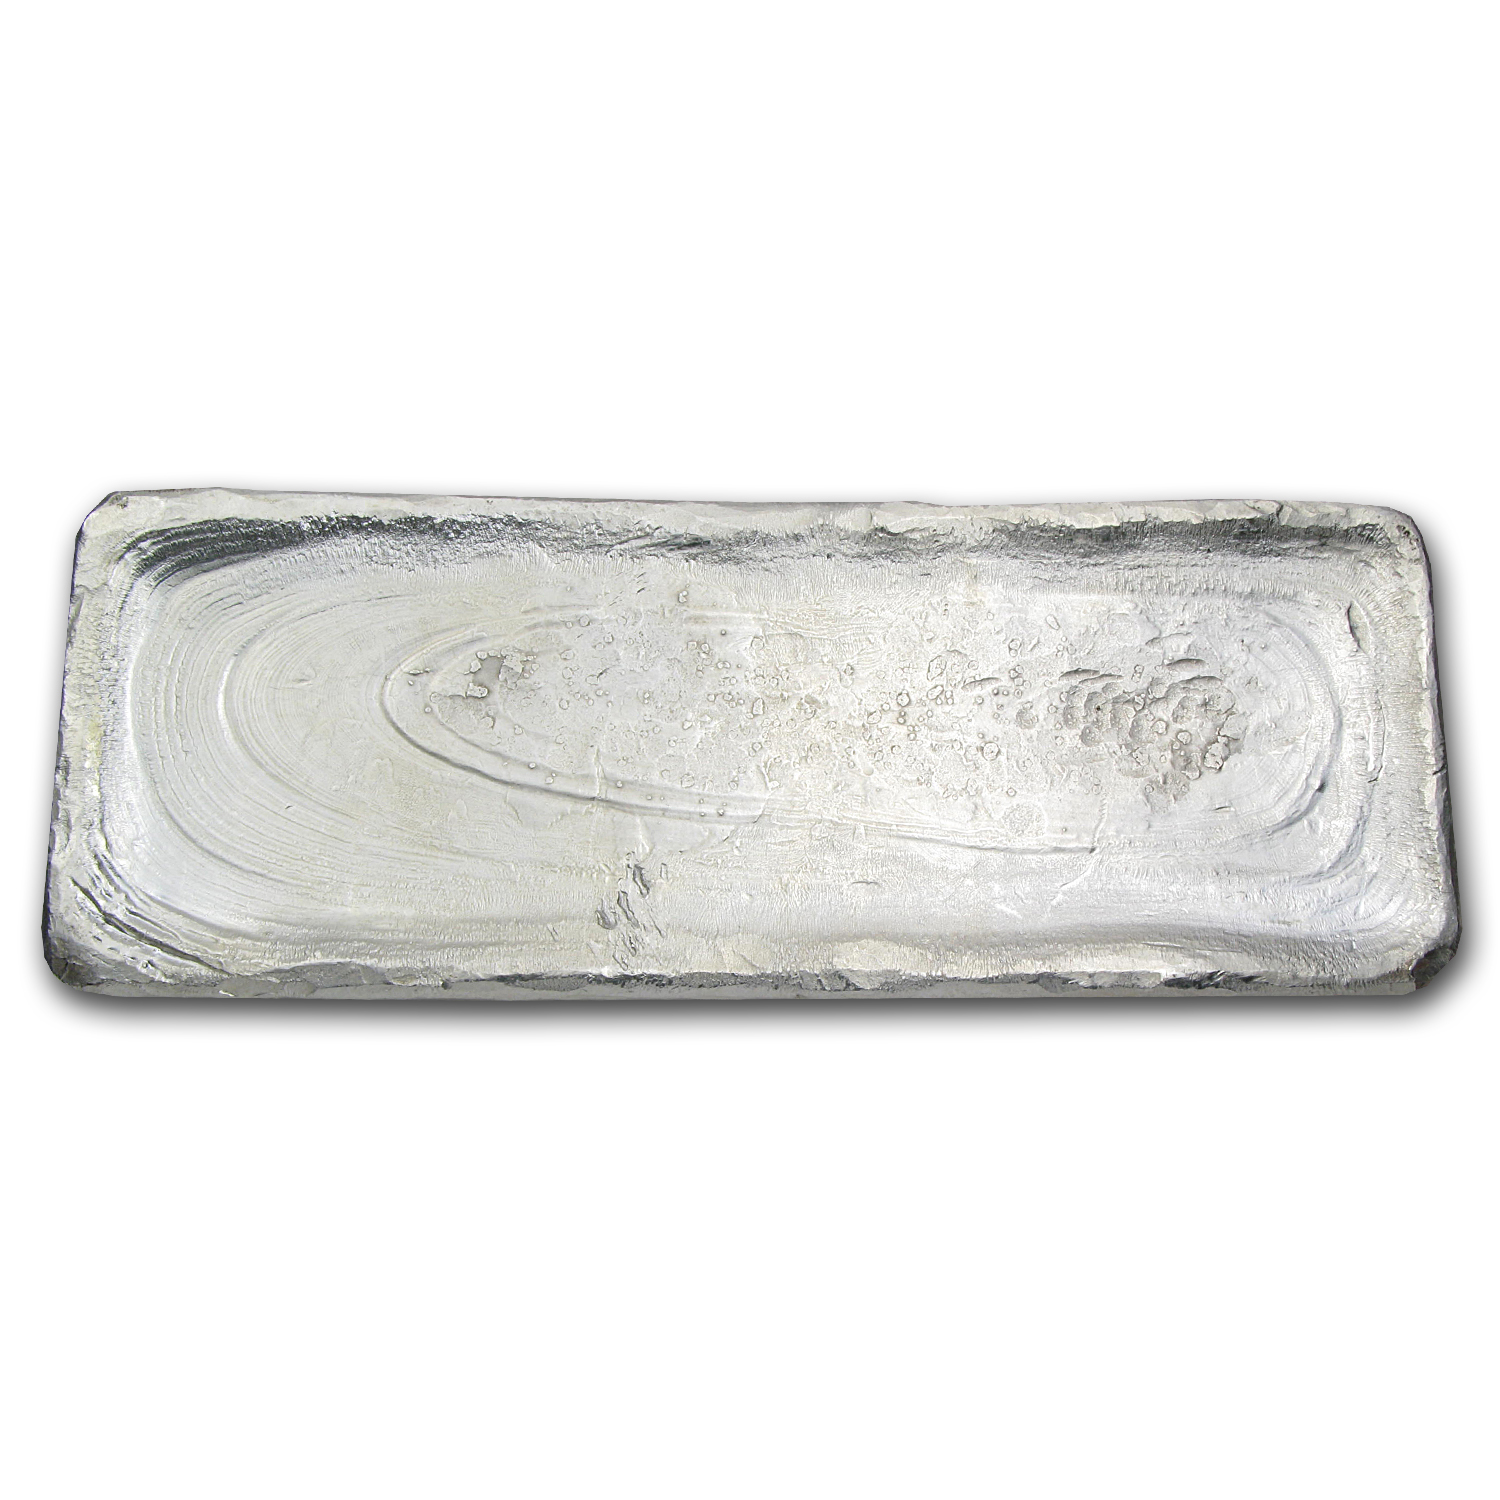 100 oz Silver Bars - Golden Analytical